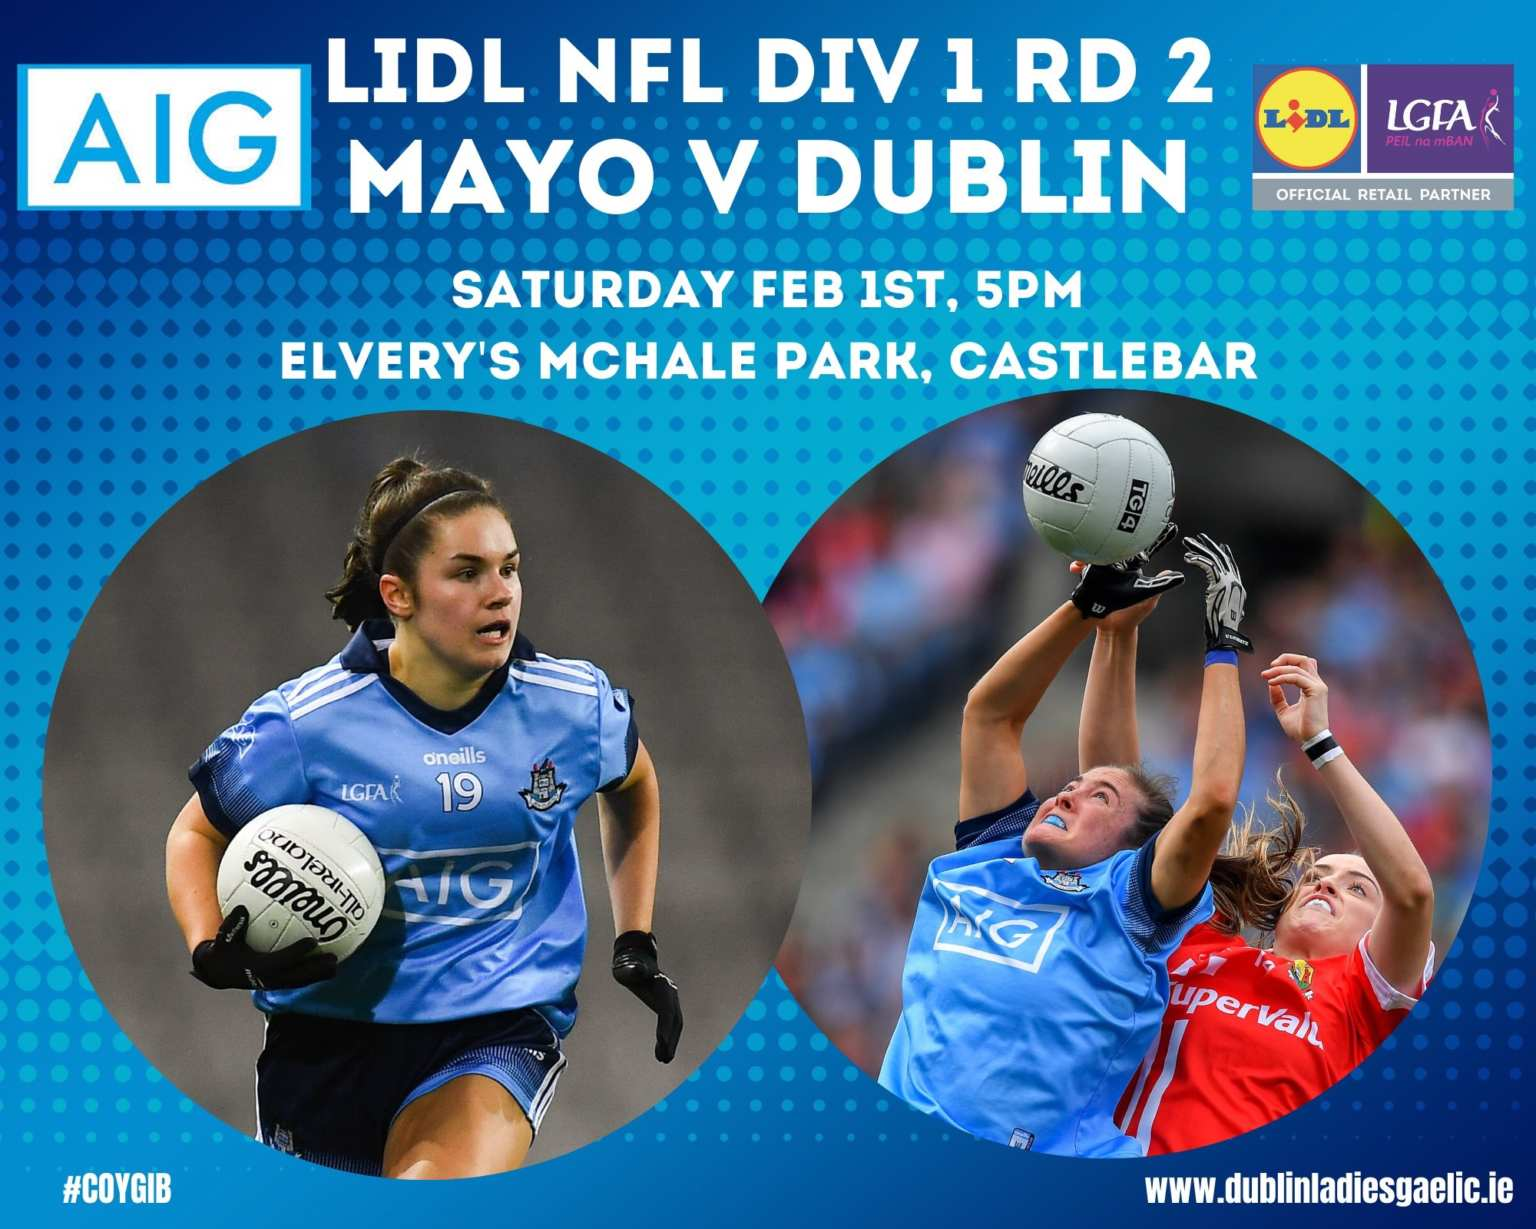 Promotional poster for Dublin's Ladies footballers league clash with Mayo, manager Mick Bohan has made two changes to the side that drew with Tipperary last weekend